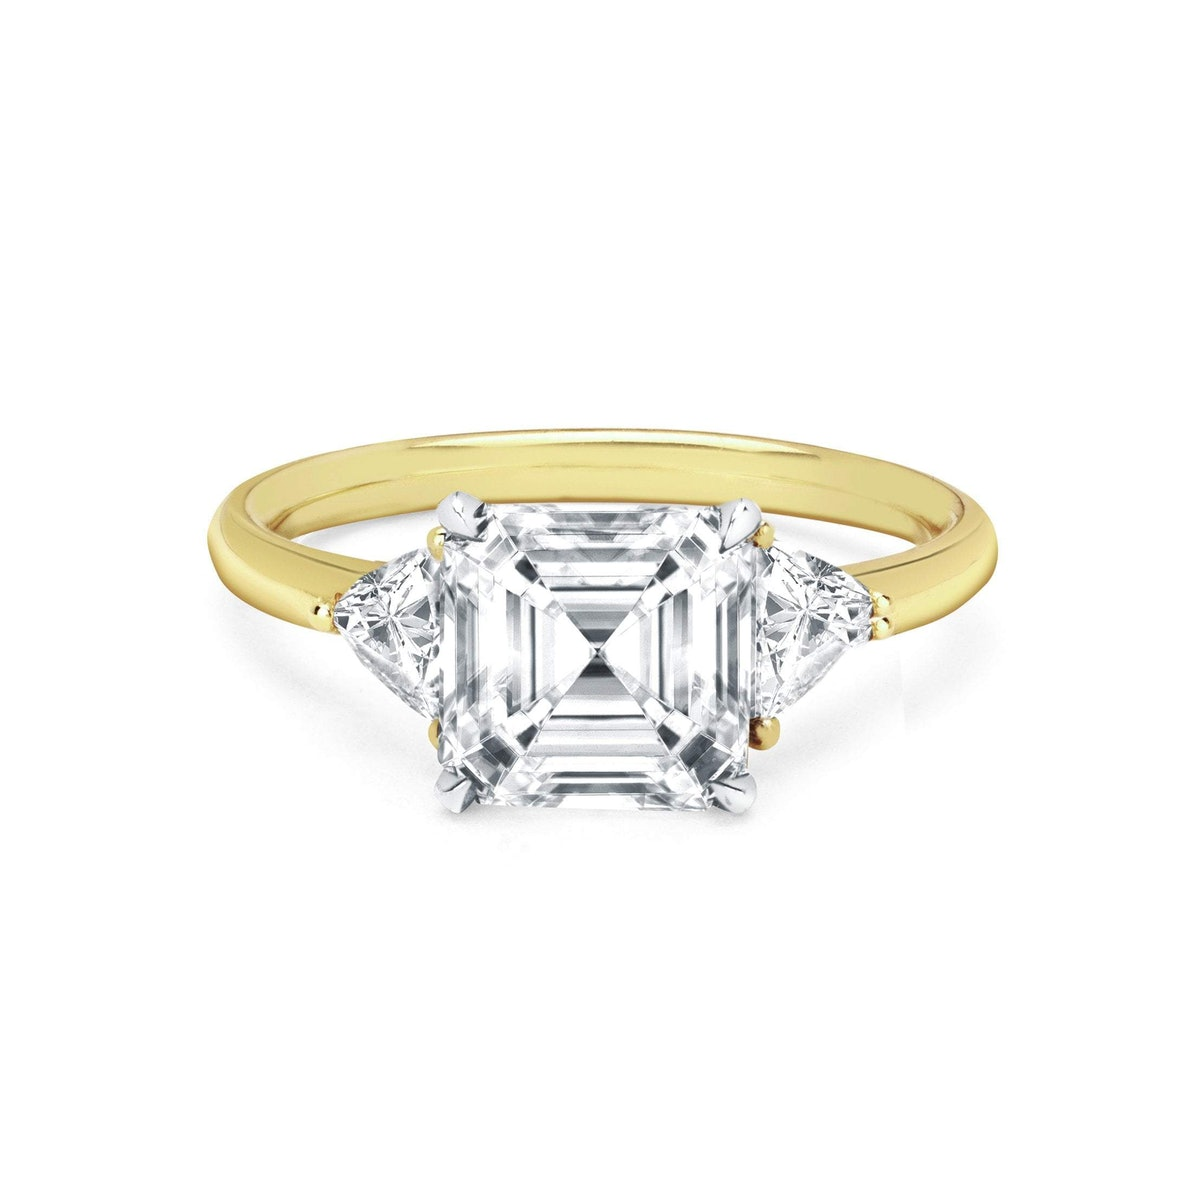 Asscher Cut Diamond Setting with Side Trillion Diamonds engagement ring from Logan Hollowell